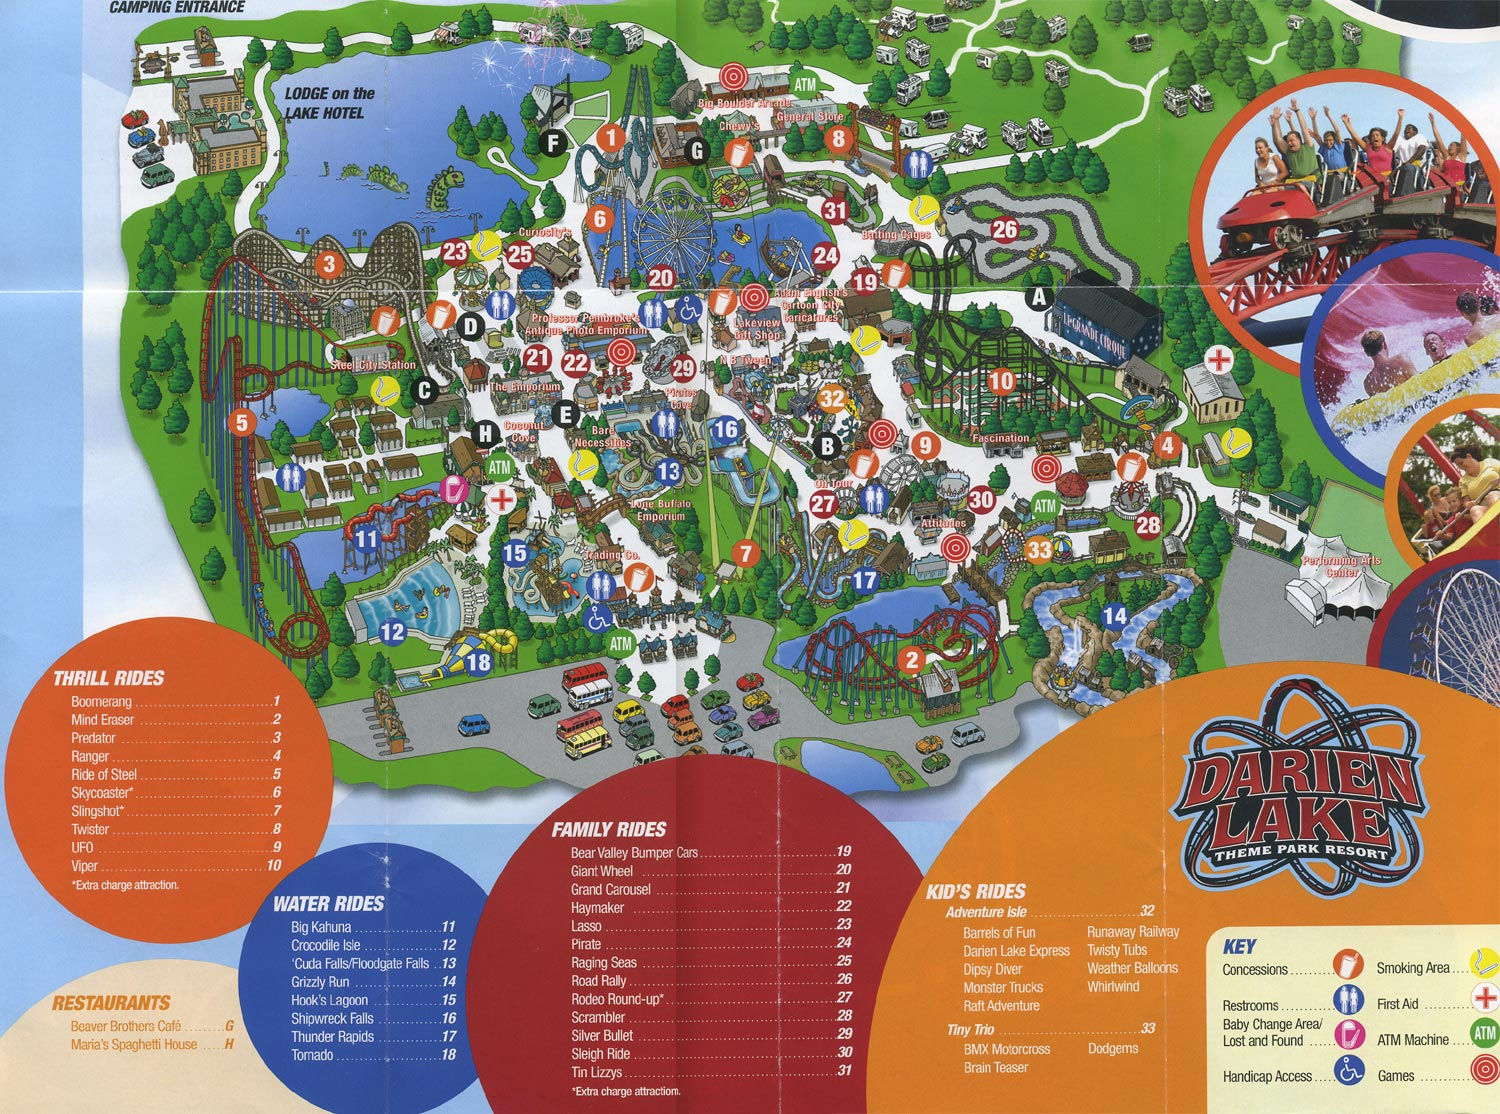 darien lake campground map Back From The Dead Theme Park Map Day Dc S darien lake campground map